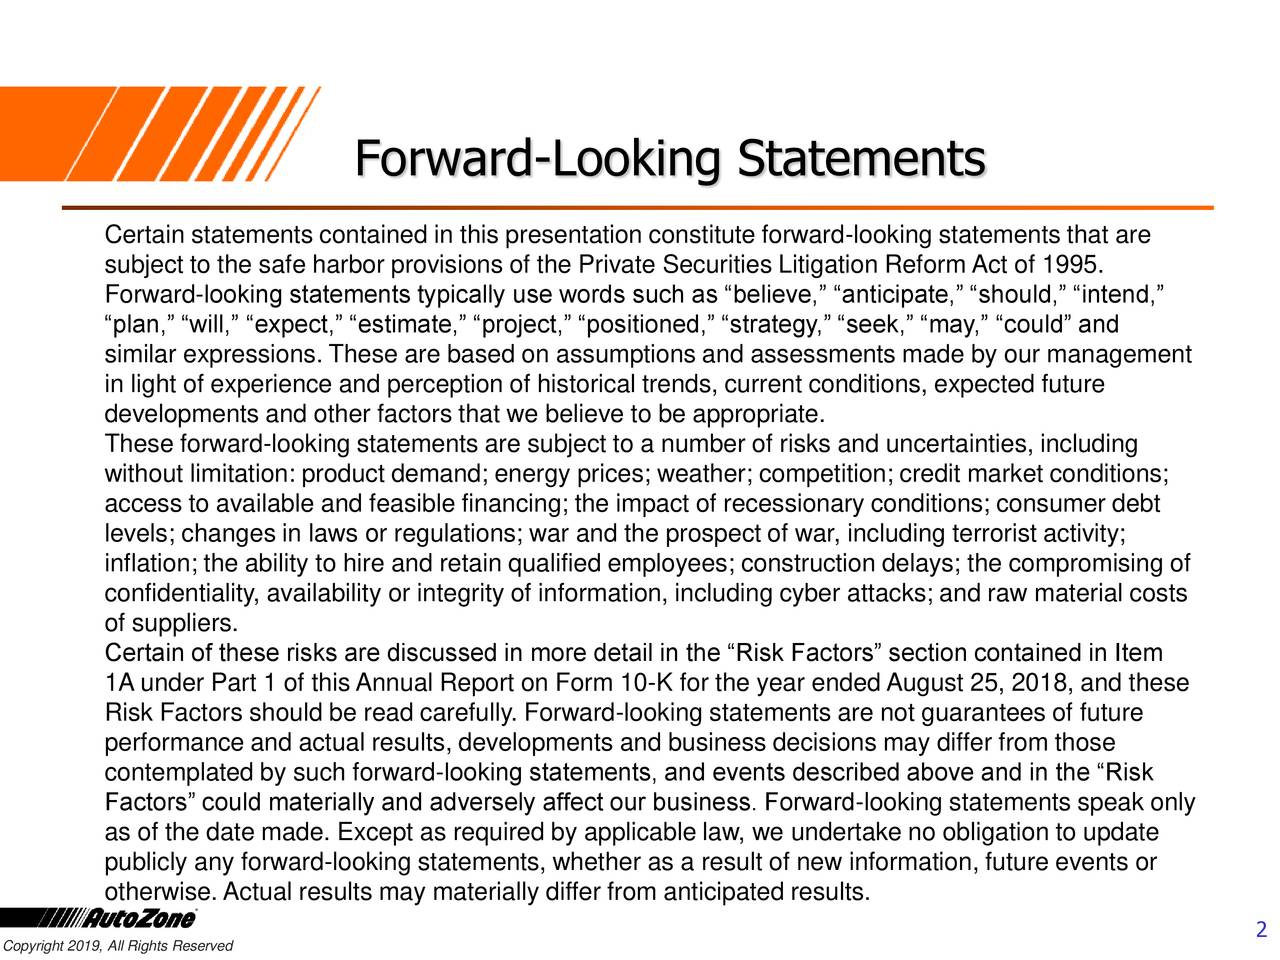 """Certain statements contained in this presentation constitute forward-looking statements that are subject to the safe harbor provisions of the Private Securities Litigation Reform Act of 1995. Forward-looking statements typically use words such as """"believe,"""" """"anticipate,"""" """"should,"""" """"intend,"""" """"plan,"""" """"will,"""" """"expect,"""" """"estimate,"""" """"project,"""" """"positioned,"""" """"strategy,"""" """"seek,"""" """"may,"""" """"could"""" and similar expressions. These are based on assumptions and assessments made by our management in light of experience and perception of historical trends, current conditions, expected future developments and other factors that we believe to be appropriate. These forward-looking statements are subject to a number of risks and uncertainties, including without limitation: product demand; energy prices; weather; competition; credit market conditions; access to available and feasible financing; the impact of recessionary conditions; consumer debt levels; changes in laws or regulations; war and the prospect of war, including terrorist activity; inflation; the ability to hire and retain qualified employees; construction delays; the compromising of confidentiality, availability or integrity of information, including cyber attacks; and raw material costs of suppliers. Certain of these risks are discussed in more detail in the """"Risk Factors"""" section contained in Item 1A under Part 1 of this Annual Report on Form 10-K for the year ended August 25, 2018, and these Risk Factors should be read carefully. Forward-looking statements are not guarantees of future performance and actual results, developments and business decisions may differ from those contemplated by such forward-looking statements, and events described above and in the """"Risk Factors"""" could materially and adversely affect our business. Forward-looking statements speak only as of the date made. Except as required by applicable law, we undertake no obligation to update publicly any forward-looking statements, whether as a result of new """